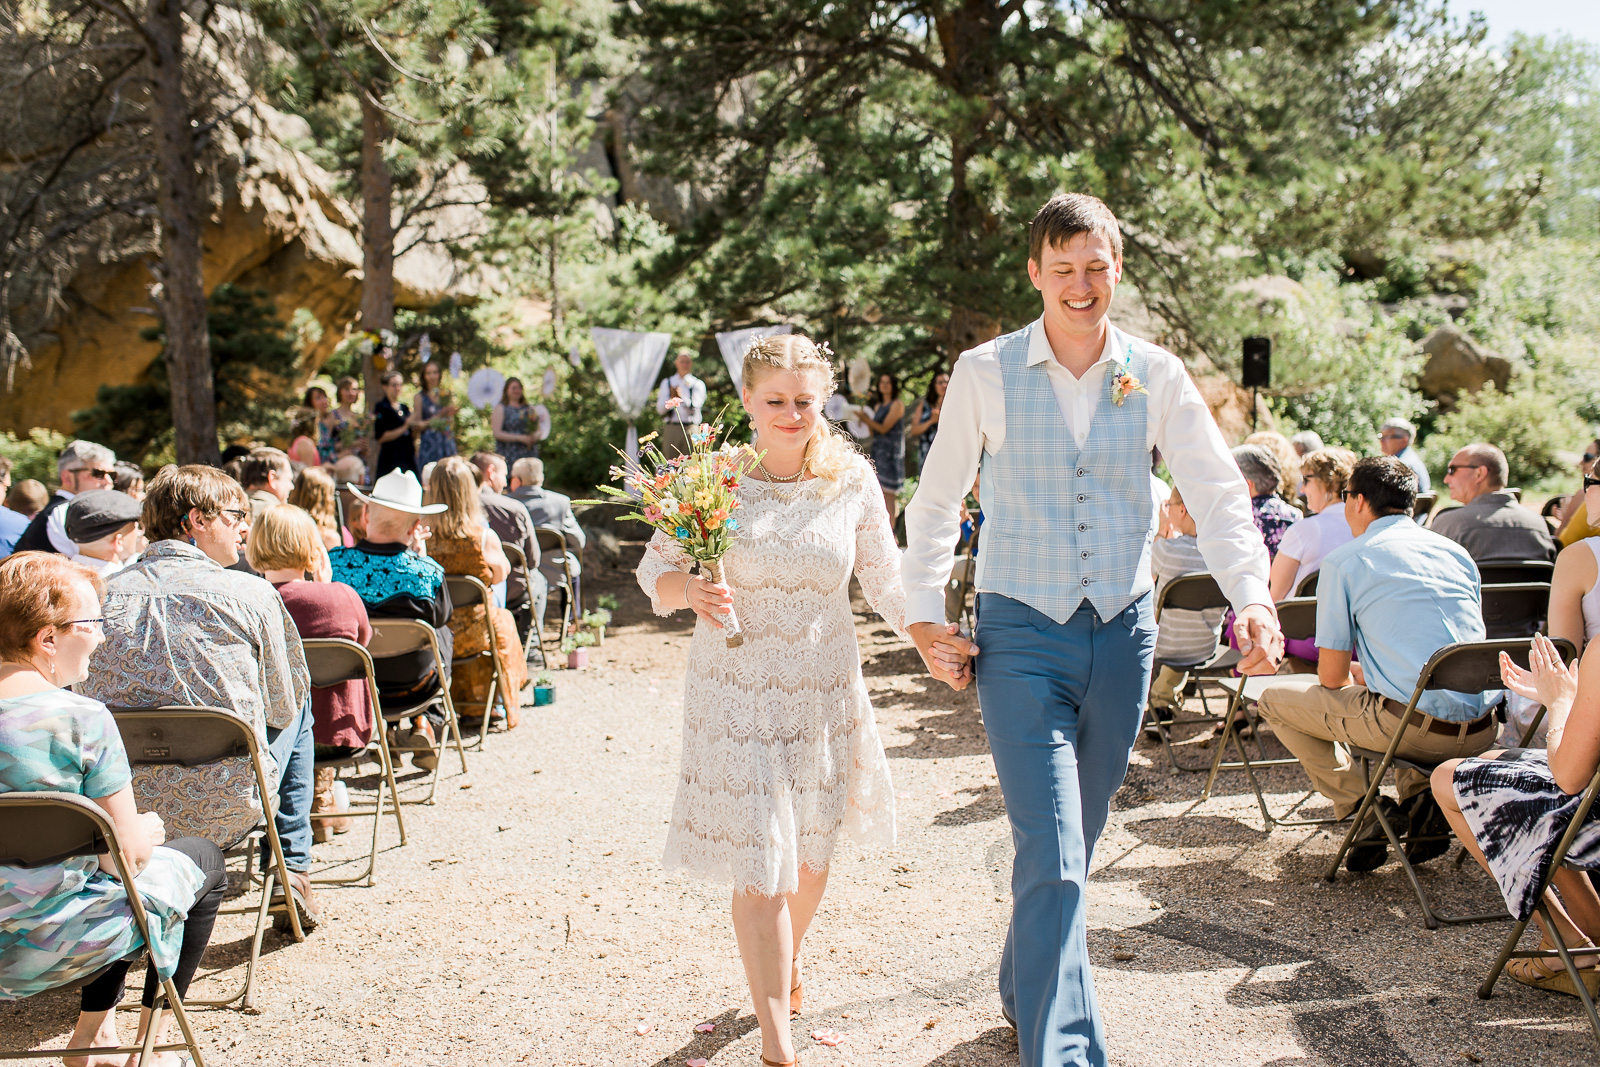 Vintage Wedding at Curt Gowdy State Park by Megan Lee Photography